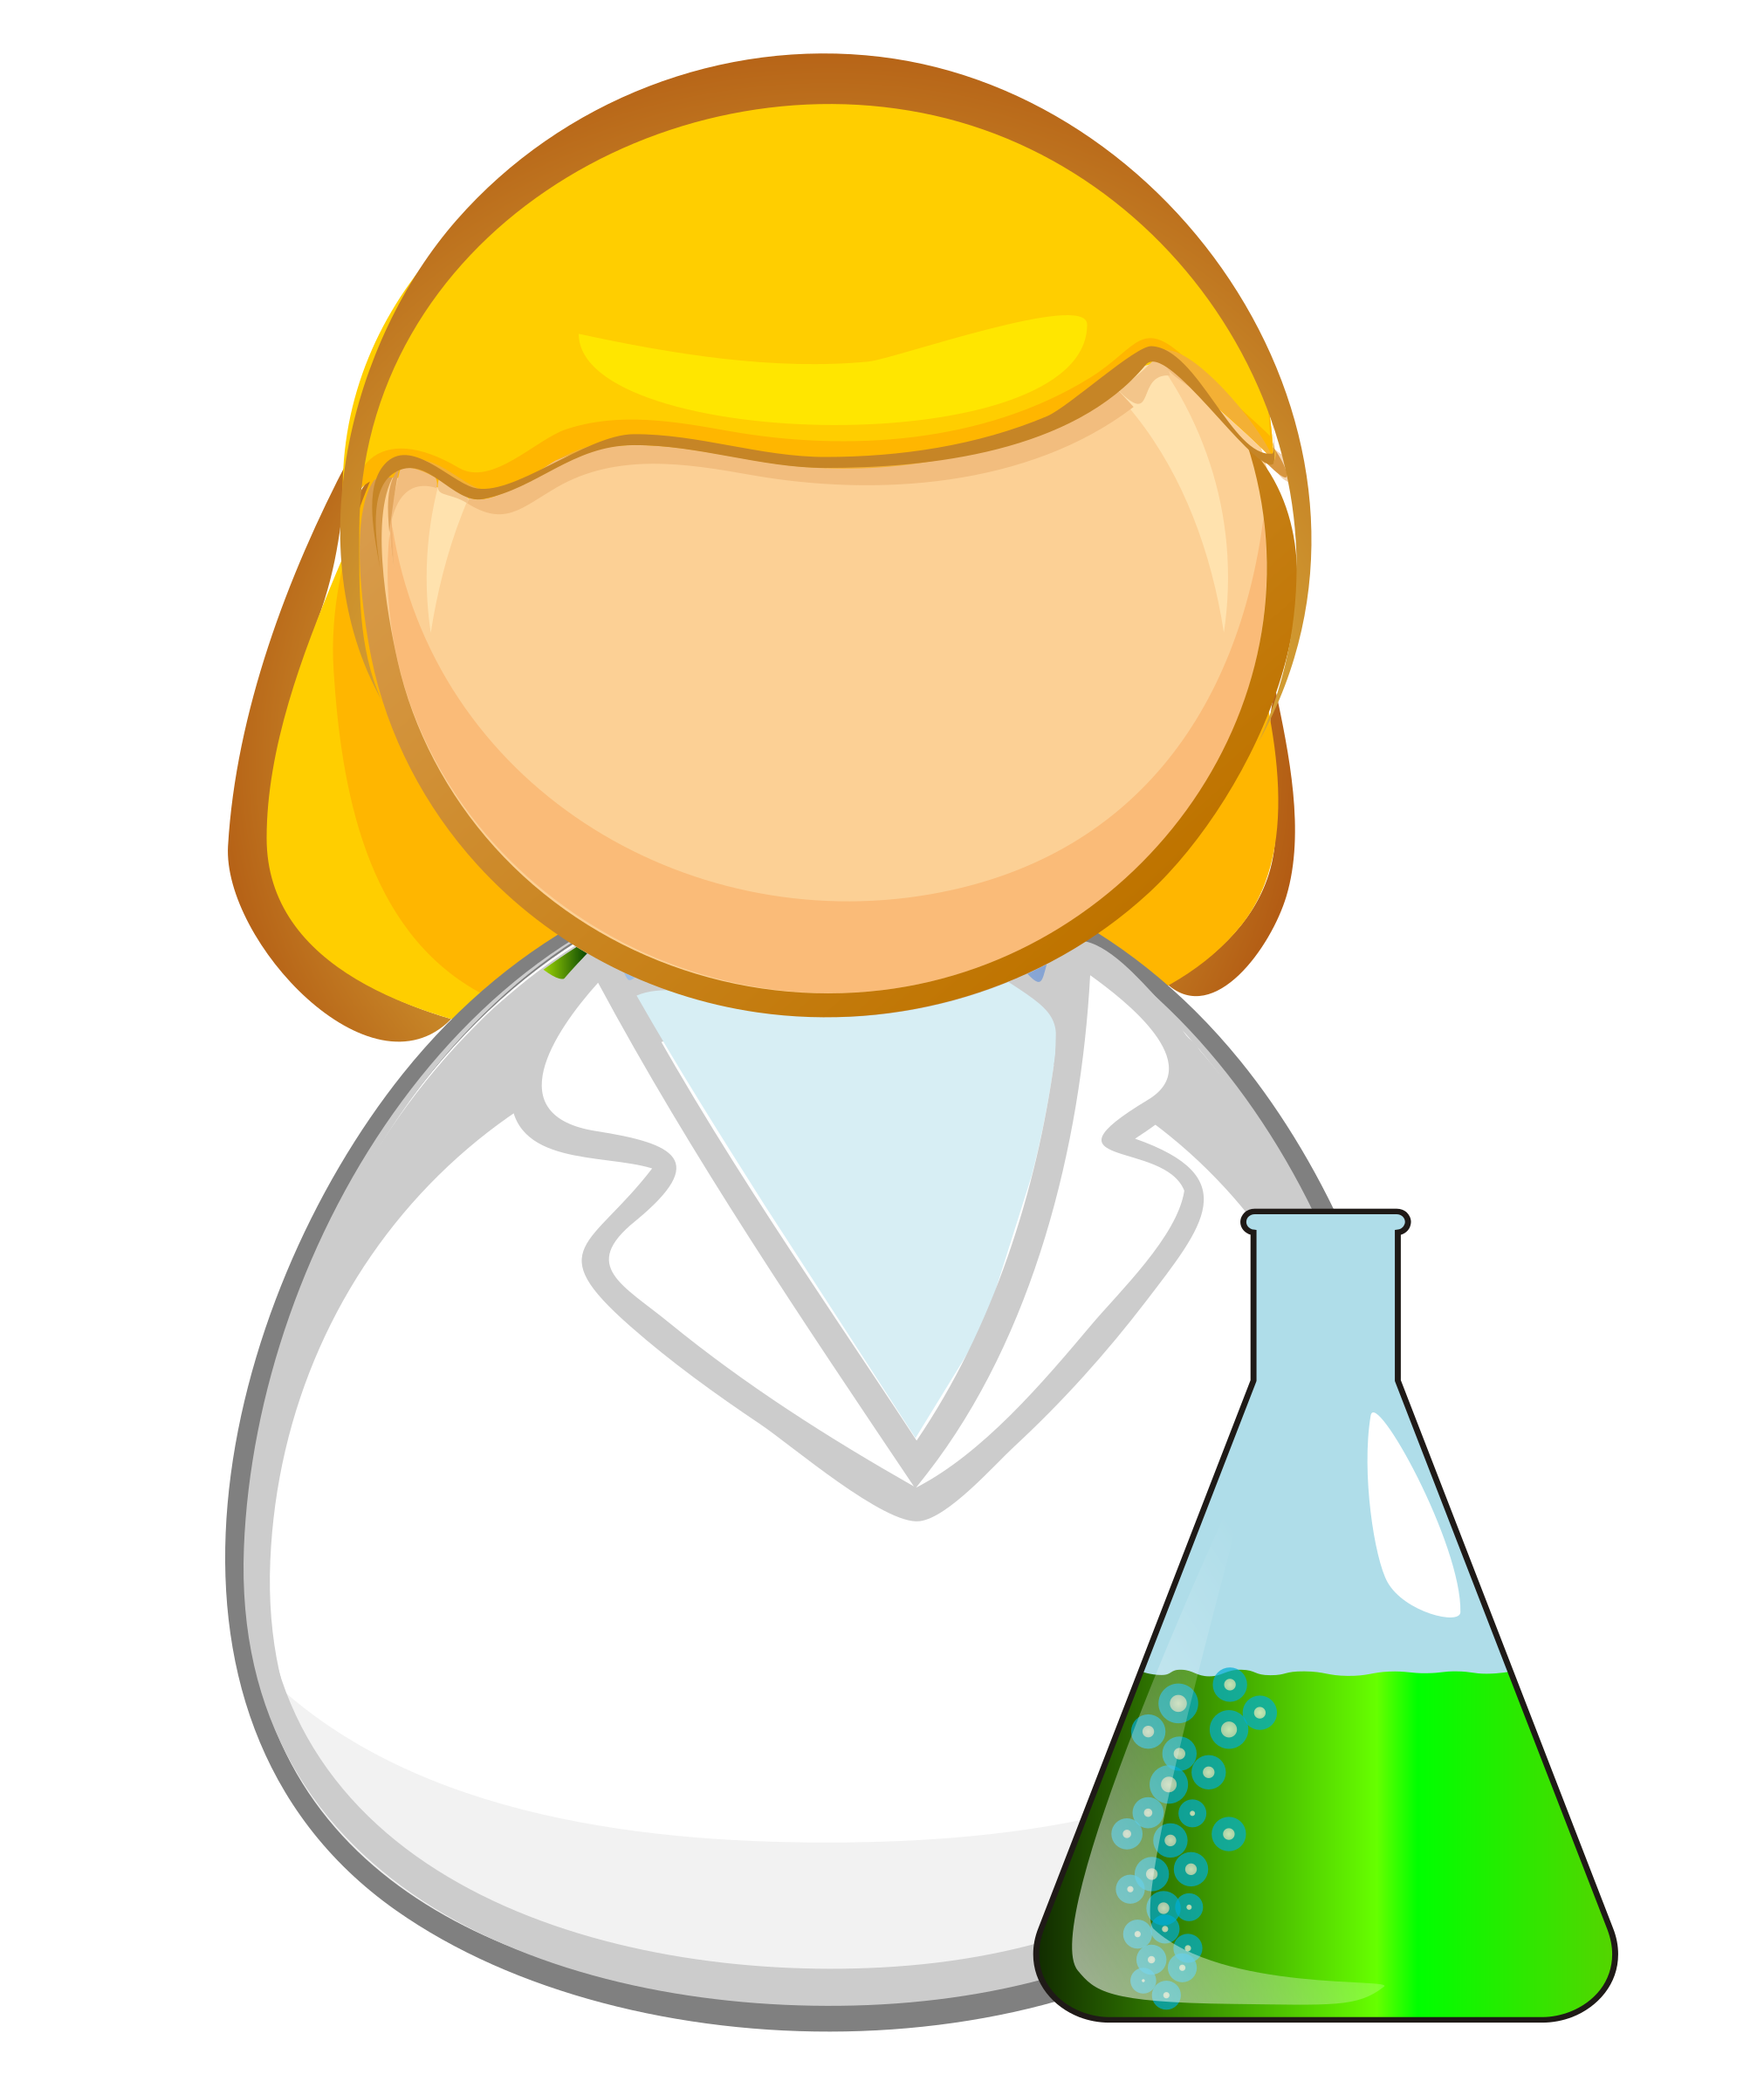 Laboratory worker by Juhele